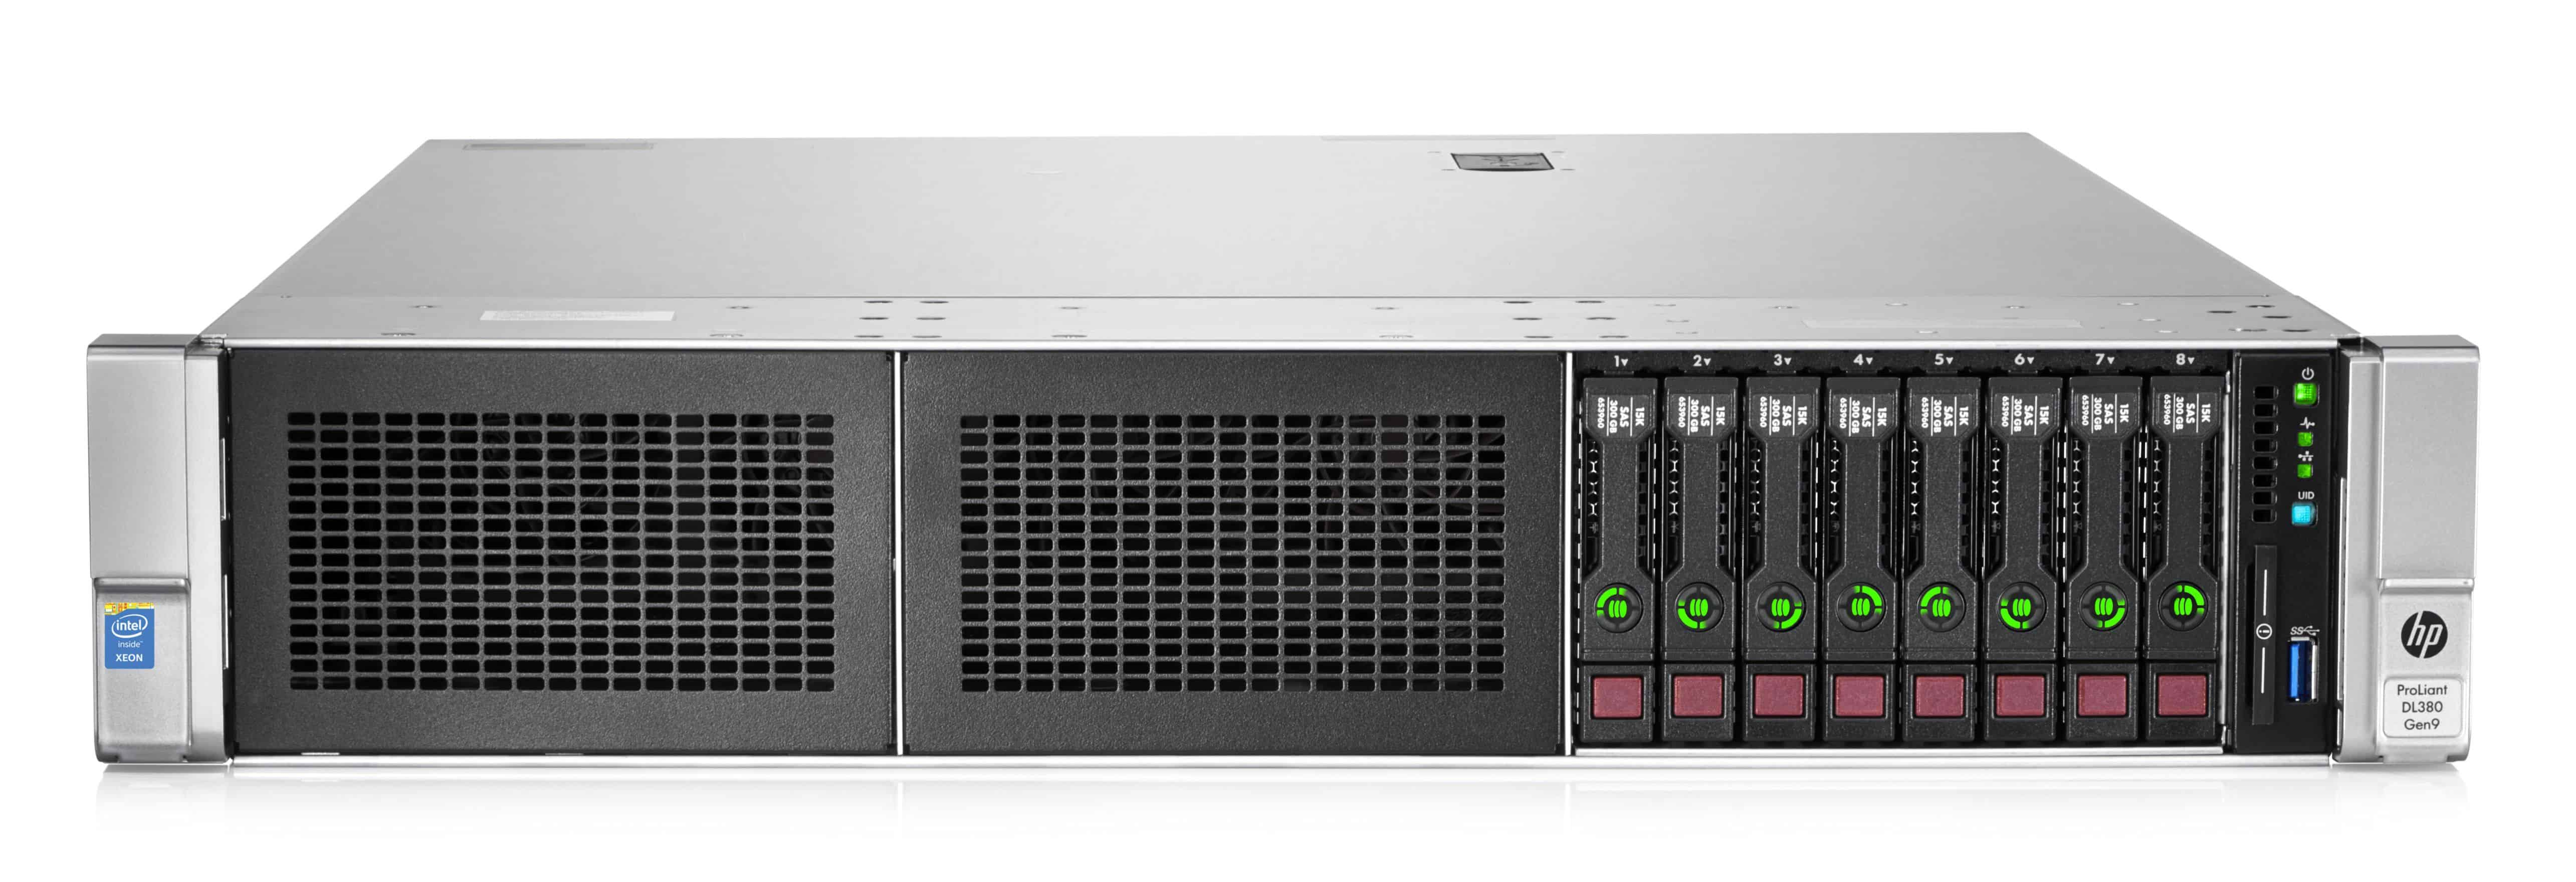 amazon HP Proliant DL380 Gen9 reviews HP Proliant DL380 Gen9 on amazon newest HP Proliant DL380 Gen9 prices of HP Proliant DL380 Gen9 HP Proliant DL380 Gen9 deals best deals on HP Proliant DL380 Gen9 buying a HP Proliant DL380 Gen9 lastest HP Proliant DL380 Gen9 what is a HP Proliant DL380 Gen9 HP Proliant DL380 Gen9 at amazon where to buy HP Proliant DL380 Gen9 where can i you get a HP Proliant DL380 Gen9 online purchase HP Proliant DL380 Gen9 HP Proliant DL380 Gen9 sale off HP Proliant DL380 Gen9 discount cheapest HP Proliant DL380 Gen9 HP Proliant DL380 Gen9 for sale HP Proliant DL380 Gen9 products HP Proliant DL380 Gen9 tutorial HP Proliant DL380 Gen9 specification HP Proliant DL380 Gen9 features HP Proliant DL380 Gen9 test HP Proliant DL380 Gen9 series HP Proliant DL380 Gen9 service manual HP Proliant DL380 Gen9 instructions HP Proliant DL380 Gen9 accessories serveur hp proliant dl380 gen9 algerie hp proliant dl380 gen9 maintenance and service guide hp proliant dl380 gen9 network adapter hp proliant dl380 gen9 smart array hp proliant dl380 gen9 array configuration utility hp proliant dl380 gen9 amber light hp proliant dl380 gen9 flashing amber system degraded hp proliant dl380 gen9 smart storage administrator hp proliant dl380 gen9 amazon hp proliant dl380 gen9 array configuration utility download buy hp proliant dl380 gen9 bios hp proliant dl380 gen9 hp proliant dl380 gen9 bios update hp proliant dl380 gen9 bios settings hp proliant dl380 gen9 bios upgrade hp proliant dl380 gen9 base system device hp proliant dl380 gen9 boot menu hp proliant dl380 gen9 battery replacement hp proliant dl380 gen9 power button hp proliant dl380 gen9 latest bios customize hp proliant dl380 gen9 configure raid hp proliant dl380 gen9 configure hp proliant dl380 gen9 hp proliant dl380 gen9 caracteristicas hp proliant dl380 gen9 warranty check hp proliant dl380 gen9 raid controller hp proliant dl380 gen9 server network configuration utility hp proliant dl380 gen9 vmware compatibility hp proliant dl380 gen9 cpu driver server hp proliant dl380 gen9 drivers & software for hp proliant dl380 gen9 server download hp proliant dl380 gen9 firmware driver hp proliant dl380 gen9 download driver hp proliant dl380 gen9 drivers hp proliant dl380 gen9 download hp proliant dl380 gen9 drivers datasheet hp proliant dl380 gen9 hp proliant dl380 gen9 datenblatt hp proliant dl380 gen9 spp download hp proliant dl380 gen9 eol hp proliant dl380 gen9 vmware esxi download hp proliant dl380 gen9 enable hyperthreading hp proliant dl380 gen9 e5-2609v3 hp proliant dl380 gen9 intel xeon e5-2620v3 6-core hp proliant dl380 gen9 intel xeon e5-2620v4 8-core hp enterprise proliant dl380 gen9 hp proliant dl380 gen9 price in egypt hp proliant dl380 gen9 (2)intel® xeon® e5-2650 v4 hp proliant dl380 gen9 esxi fiche technique serveur hp proliant dl380 gen9 firmware hp proliant dl380 gen9 hp proliant dl380 gen9 firmware download hp proliant dl380 gen9 ilo firmware hp service pack for proliant dl380 gen9 hp proliant dl380 gen9 server firmware update hp proliant dl380 gen9 server firmware hp proliant dl380 gen9 drive array controller failure hp proliant dl380 gen9 boot from dvd hp proliant dl380 gen9 installation guide hp proliant dl380 gen9 graphics driver hp proliant dl380 generation9 (gen9) quickspecs hp proliant dl380 generation9 (gen9) datasheet hp proliant dl380 gen9 troubleshooting guide hp proliant dl380 gen9 graphics hp proliant dl380 gen9 vs gen10 hp proliant dl380 gen9 server guide hp proliant dl380 gen9 gpu harga hp proliant dl380 gen9 server how to install windows server 2012 on hp proliant dl380 gen9 how to install hp proliant dl380 gen9 harga hp proliant dl380 gen9 how to install os on hp proliant dl380 gen9 how to configure raid on hp proliant dl380 gen9 how to install windows server 2012 r2 on a hp proliant dl380 gen9 how to use ilo 4 to install windows server 2016 on hp proliant dl380 gen9 hp hp proliant dl380 gen9 hp proliant dl380 gen9 hdd install hp proliant dl380 gen9 install windows server 2012 hp proliant dl380 gen9 install esxi 5.5 on hp proliant dl380 gen9 ilo configuration hp proliant dl380 gen9 hp proliant dl380 gen9 memory installation hp proliant dl380 gen9 led indicators hp proliant dl380 gen9 ilo default password hp proliant dl380 gen9 price in dubai jual hp proliant dl380 gen9 hp proliant dl380 gen9 konfigurator hp proliant dl380 gen9 price in kenya hp proliant dl380 gen9 bios key hp proliant dl380 gen9 rail kit hp proliant dl380 gen9 k8p42a hp proliant dl380 gen9 kurulum hp proliant dl380 gen9 latest firmware hp proliant dl380 gen9 serial number location hp proliant dl380 gen9 health led hp proliant dl380 gen9 led hp proliant dl380 gen9 red light hp proliant dl380 gen9 install linux hp proliant dl380 gen9 lff hp proliant dl380 gen9 linux máy chủ hp proliant dl380 gen9 máy chủ hp proliant dl380 gen9 v4 manual hp proliant dl380 gen9 hp proliant dl380 gen9 user manual hp proliant dl380 gen9 motherboard hp proliant dl380 gen9 smart update manager hp proliant dl380 gen9 os support matrix hp proliant dl380 gen9 network drivers hp proliant dl380 gen9 nic teaming hp proliant dl380 gen9 price in nigeria hp proliant dl380 gen9 part number hp proliant dl380 gen9 serial number hp proliant dl380 gen9 network teaming hp proliant dl380 gen9 nic hp proliant dl380 gen9 10gb nic hp proliant dl380 gen9 nic drivers hp proliant dl380 gen9 os support hp proliant dl380 gen9 os installation guide hp proliant dl380 gen9 configure to order hp proliant dl380 gen9 hangs on boot hp proliant dl380 gen9 boot order hp proliant dl380 gen9 end of support hp proliant dl380 gen9 oid hp proliant dl380 gen9 configure-to-order server hp proliant dl380 gen9 8 sff configure-to-order server hp proliant dl380 gen9 overview prix hp proliant dl380 gen9 precio servidor hp proliant dl380 gen9 price for hp proliant dl380 gen9 product number hp proliant dl380 gen9 hp proliant dl380 gen9 service pack hp proliant dl380 gen9 spare parts hp proliant dl380 gen9 power supply hp proliant dl380 gen9 power requirements quickspecs hp proliant dl380 gen9 hp proliant dl380 gen9 quickspecs hp proliant dl380 gen9 24sff quickspecs hp proliant dl380 gen9 quickspec hp proliant dl380 gen9 server quickspecs hp proliant dl380 gen9 quickspecs pdf hp proliant dl380 gen9 release date hp proliant dl380 gen9 rack server hp proliant dl380 gen9 review hp proliant dl380 gen9 2u rack server hp proliant dl380 gen9 drivers windows server 2012 r2 hp proliant dl380 gen9 system rom hp proliant dl380 gen9 raid 5 configuration serveur hp proliant dl380 gen9 servidor hp proliant dl380 gen9 servidor hp proliant dl380 gen9 precio serveur hp proliant dl380 gen9 fiche technique serveur hp proliant dl380 gen9 prix spesifikasi hp proliant dl380 gen9 server serwer hp proliant dl380 gen9 server hp proliant dl380 gen9 spek hp proliant dl380 gen9 hp proliant dl380 gen9 temperature hp proliant dl380 gen9 tpm hp proliant dl380 gen9 technical specification hp proliant dl380 gen9 24sff configure-to-order server hp proliant dl380 gen9 server prior to v2.54 ubuntu on hp proliant dl380 gen9 update firmware hp proliant dl380 gen9 hp proliant dl380 gen9 user guide hp proliant dl380 gen9 firmware update iso hp proliant dl380 gen9 intelligent provisioning update visio hp proliant dl380 gen9 vmware hp proliant dl380 gen9 hp proliant dl380 gen9 rear view hp proliant dl380 gen9 server 2u rack e5-2650 v3 hp proliant dl380 gen9 e5-2680 v3 hp proliant dl380 gen9 visio stencil hp proliant dl380 gen9 vs dell hp proliant dl380 gen9 weight hp proliant dl380 gen9 windows server 2012 drivers hp proliant dl380 gen9 server weight hp proliant dl380 gen9 windows server 2016 hp proliant dl380 gen9 server with standard sff bay hp proliant dl380 gen9 warranty hp proliant dl380 gen9 install windows hp proliant dl380 gen9 windows server 2012 r2 hp proliant dl380 gen9 intel xeon e5-2640v3 8-core hp proliant dl380 gen9 intel xeon e5-2640v4 10-core hp proliant dl380 gen9 intel xeon e5-2620v4 hp proliant dl380 gen9 - xeon e5-2620v3 2.4 ghz hp proliant dl380 gen9 10gb hp proliant dl380 gen9 1u hp proliant dl380 gen9 e5-2650v3 2.3ghz 10-core hp proliant dl380 gen9 12lff cto server hp proliant dl380 gen9 12lff configure-to-order server hp proliant dl380 gen9 server raid 1+0 partition hp proliant dl380 gen9 12lff hp proliant dl380 gen9 24sff hp proliant dl380 gen9 2u hp proliant dl380 gen9 e5-2620v3 datasheet 32gb memory for hp proliant dl380 gen9 hp proliant dl380 gen9 32gb hp proliant dl380 gen9 raid 5 hp proliant dl380 gen9 esxi 5.5 hp proliant dl380 gen9 esxi 6.5 hp proliant dl380 gen9 esxi 6.7 hp proliant dl380 gen9 esxi 6.0 hp proliant dl380 gen9 raid 6 hp proliant dl380 gen9 e5-2620v3 2.4ghz 6-core hp proliant dl380 gen9 8sff specs hp proliant dl380 gen9 8sff cto hp proliant dl380 gen9 8sff server hp proliant dl380 gen9 8sff datasheet hp proliant dl380 gen9 8sff europe-multilingual localization conf hp proliant dl380 gen9 8sff configure-to-order server hp proliant dl380 gen9 8sff hp proliant dl380 gen9 8sff cto server hpe proliant dl380 gen9 hp proliant dl380 gen9 btu hp proliant dl380 gen9 smart storage battery hp proliant dl380 gen9 configuration hp proliant dl380 gen9 server configuration hp drivers proliant dl380 gen9 hp proliant dl380 gen9 dimensions hp proliant dl380 gen9 datasheet hp firmware proliant dl380 gen9 hp proliant dl380 gen9 fiche technique hp proliant dl380 gen9 firmware dvd hp hpe proliant dl380 gen9 hp proliant dl380 gen9 hard disk hp proliant dl380 gen9 price in india hp proliant dl380 gen9 ilo firmware download hp proliant dl380 gen9 rack mount hp proliant dl380 gen9 cable management arm hp proliant dl380 gen9 product number hp proliant dl380 gen9 install os hp product number proliant dl380 gen9 hp proliant dl380 gen9 price hp proliant dl380 gen9 prix hp server proliant dl380 gen9 hp smart buy proliant dl380 gen9 hp support proliant dl380 gen9 hp proliant dl380 gen9 specs hp proliant dl380 gen9 memory upgrade hp proliant dl380 gen9 visio hpe proliant dl380 gen9 spare parts hpe proliant dl380 gen9 e5-2620v4 hpe proliant dl380 gen9 datasheet hpe proliant dl380 gen9 support hpe proliant dl380 gen9 server drivers hpe proliant dl380 gen9 server specs hpe proliant dl380 gen9 quickspecs hpe proliant dl380 gen9 drivers hpe proliant dl380 gen9 12lff hp proliant dl380 gen9 drivers hp proliant hp dl380 gen9 hp proliant server dl380 gen9 rack model hp proliant server dl380 gen9 hp proliant dl380 gen9 support hp proliant dl380 gen9 hp proliant dl380 drivers gen9 hp proliant dl380 generation9 (gen9) hp proliant dl380 gen8 vs gen9 hp proliant dl380 gen9 hot swap hp proliant dl380p gen9 specifications hp proliant dl380p gen9 specs hp proliant dl380p gen9 end of life hp proliant dl380 gen9 server hp proliant dl380 gen9 accessories hp proliant dl380 gen9 add hard drives hp proliant dl380 gen9 acu hp proliant dl380 gen9 architecture hp proliant dl380 gen9 server maintenance and service guide hpe proliant dl380 gen9 maintenance and service guide hp proliant dl380 gen9 boot from usb hp proliant dl380 gen9 base system device driver hp proliant dl380 gen9 brochure hp proliant dl380 gen9 chipset driver hp proliant dl380 gen9 customize hp proliant dl380 gen9 chipset hp proliant dl380 gen9 cena hp proliant dl380 gen9 cost hp proliant dl380 gen9 centos hp proliant dl380 gen9 diagnostics hp proliant dl380 gen9 driver pack download hp proliant dl380 gen9 display drivers hp proliant dl380 gen9 drivers windows 2012 r2 hp proliant dl380 gen9 datasheet pdf hp proliant dl380 gen9 documentation hp proliant dl380 gen9 e5-2620v4 hp proliant dl380 gen9 end of life hp proliant dl380 gen9 e5-2620v3 1p 16gb-r sas 900gb 500w rps server hp proliant dl380 gen9 e5-2620v3 hp proliant dl380 gen9 e5-2650v3 hp proliant dl380 gen9 firmware update hp proliant dl380 gen9 firmware download iso hp proliant dl380 gen9 firmware version hp proliant dl380 gen9 fiyat hp proliant dl380 gen9 front panel hp proliant dl380 gen9 firmware upgrade hpe proliant dl380 generation9 (gen9) hpe proliant dl380 generation9 (gen9) price hp proliant dl380 gen9 server user guide hpe proliant dl380 gen9 server user guide hpe proliant dl380 generation9 (gen9) datasheet hp proliant dl380 gen9 hard drives hp proliant dl380 gen9 high performance hp proliant dl380 gen9 hyper-v hp proliant dl380 gen9 harga hp proliant dl380 gen9 ilo hp proliant dl380 gen9 ilo configuration hp proliant dl380 gen9 ilo default ip address hp proliant dl380 gen9 ilo firmware update hp proliant dl380 gen9 intelligent provisioning download hp proliant dl380 gen9 lights hpe proliant dl380 gen9 end of life hpe proliant dl380 gen9 led hp proliant dl380 gen9 manual hp proliant dl380 gen9 memory hp proliant dl380 gen9 management software hp proliant dl380 gen9 max memory hp proliant dl380 gen9 mib hp proliant dl380 gen9 maximum memory hp proliant dl380 gen9 mtbf hp proliant dl380 gen9 microsd hp proliant dl380 gen9 nvme hp proliant dl380 gen9 network drivers download hpe proliant dl380 gen9 nic teaming hp proliant dl380 gen9 operating system hp proliant dl380 gen9 server - option parts hpe proliant dl380 gen9 server - option parts hp proliant dl380 gen9 power consumption hp proliant dl380 gen9 processor hp proliant dl380 gen9 pdf hp proliant dl380 gen9 parts hpe proliant dl380 gen9 server quickspecs hpe proliant dl380 generation9 (gen9) quickspecs hpe proliant dl380 gen9 quickspec hpe proliant dl380 gen9 quick hpe proliant dl380 gen9 server models quickspecs hp proliant dl380 gen9 raid configuration hp proliant dl380 gen9 rack installation hp proliant dl380 gen9 raid driver hp proliant dl380 gen9 raid setup hp proliant dl380 gen9 raid hp proliant dl380 gen9 server specification hp proliant dl380 gen9 server price hp proliant dl380 gen9 spp hp proliant dl380 gen9 specs pdf hpe proliant dl380 gen9 troubleshooting guide hpe proliant dl380 gen9 temperature hp proliant dl380 gen9 usb boot hp proliant dl380 gen9 uefi hp proliant dl380 gen9 ubuntu hp proliant dl380 gen9 updates hp proliant dl380 gen9 uid hp proliant dl380 gen9 usb ports hpe proliant dl380 gen9 user manual hp proliant dl380 gen9 visio stencils hp proliant dl380 gen9 vmware esxi hp proliant dl380 gen9 vmware hp proliant dl380 gen9 v4 hp proliant dl380 gen9 vmware esxi 6.5 hp proliant dl380 gen9 v3 sff hp proliant dl380 gen9 watt hp proliant dl380 gen9 windows installation hp proliant dl380 gen9 windows server 2012 hp proliant dl380 gen9 windows server 2008 r2 hp proliant dl380 gen9 windows server 2008 r2 drivers hpe proliant dl380 gen9 warranty hpe proliant dl380 gen9 - xeon e5-2620v4 2.1 ghz hpe proliant dl380 gen9 xeon e5-2620v4 hpe proliant dl380 gen9 intel xeon e5-2620v4 8-core hpe proliant dl380 gen9 intel xeon hpe proliant dl380 gen9 2x intel xeon e5-2660v4 hpe proliant dl380 gen9 1x e5-2620v4 8-core hpe proliant dl380 gen9 e5-2620v4 1p hp proliant dl380 gen9 e5-2650v4 hp proliant dl380 gen9 e5-2630v4 hp proliant dl380 gen9 e5-2620v4 datasheet hp proliant dl380 gen9 e5-2640v4 hpe proliant dl380 gen9 4lff hp proliant dl380 gen9 driver pack hp proliant dl380 gen9 drivers download hp proliant dl380 gen9 specification hpe proliant dl380 gen9 8sff hpe proliant dl380 gen9 8sff datasheet hpe proliant dl380 gen9 8sff cto server